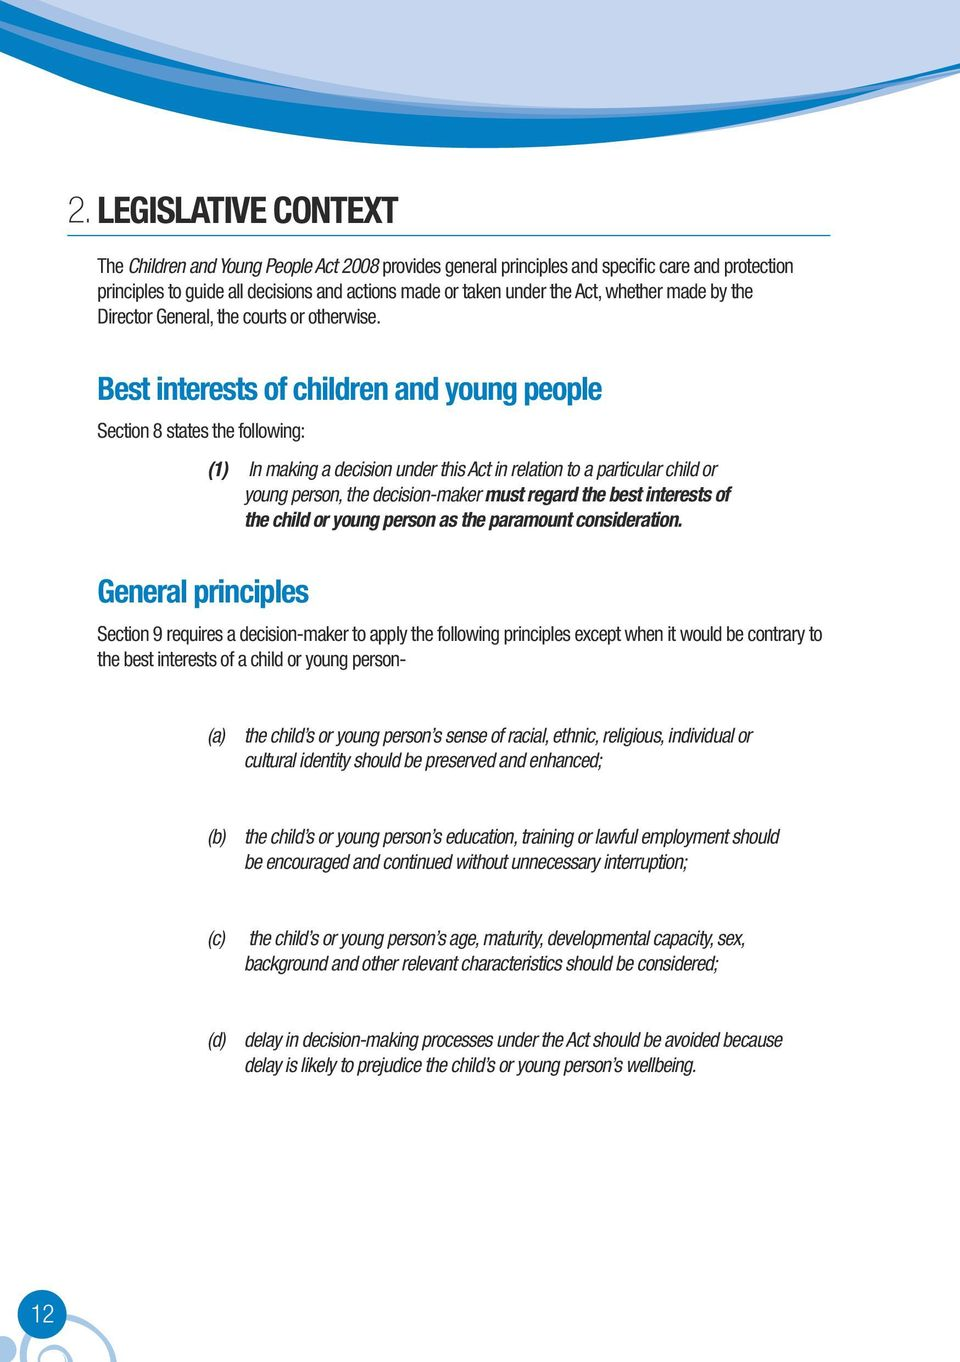 Best interests of children and young people Section 8 states the following: (1) In making a decision under this Act in relation to a particular child or young person, the decision-maker must regard